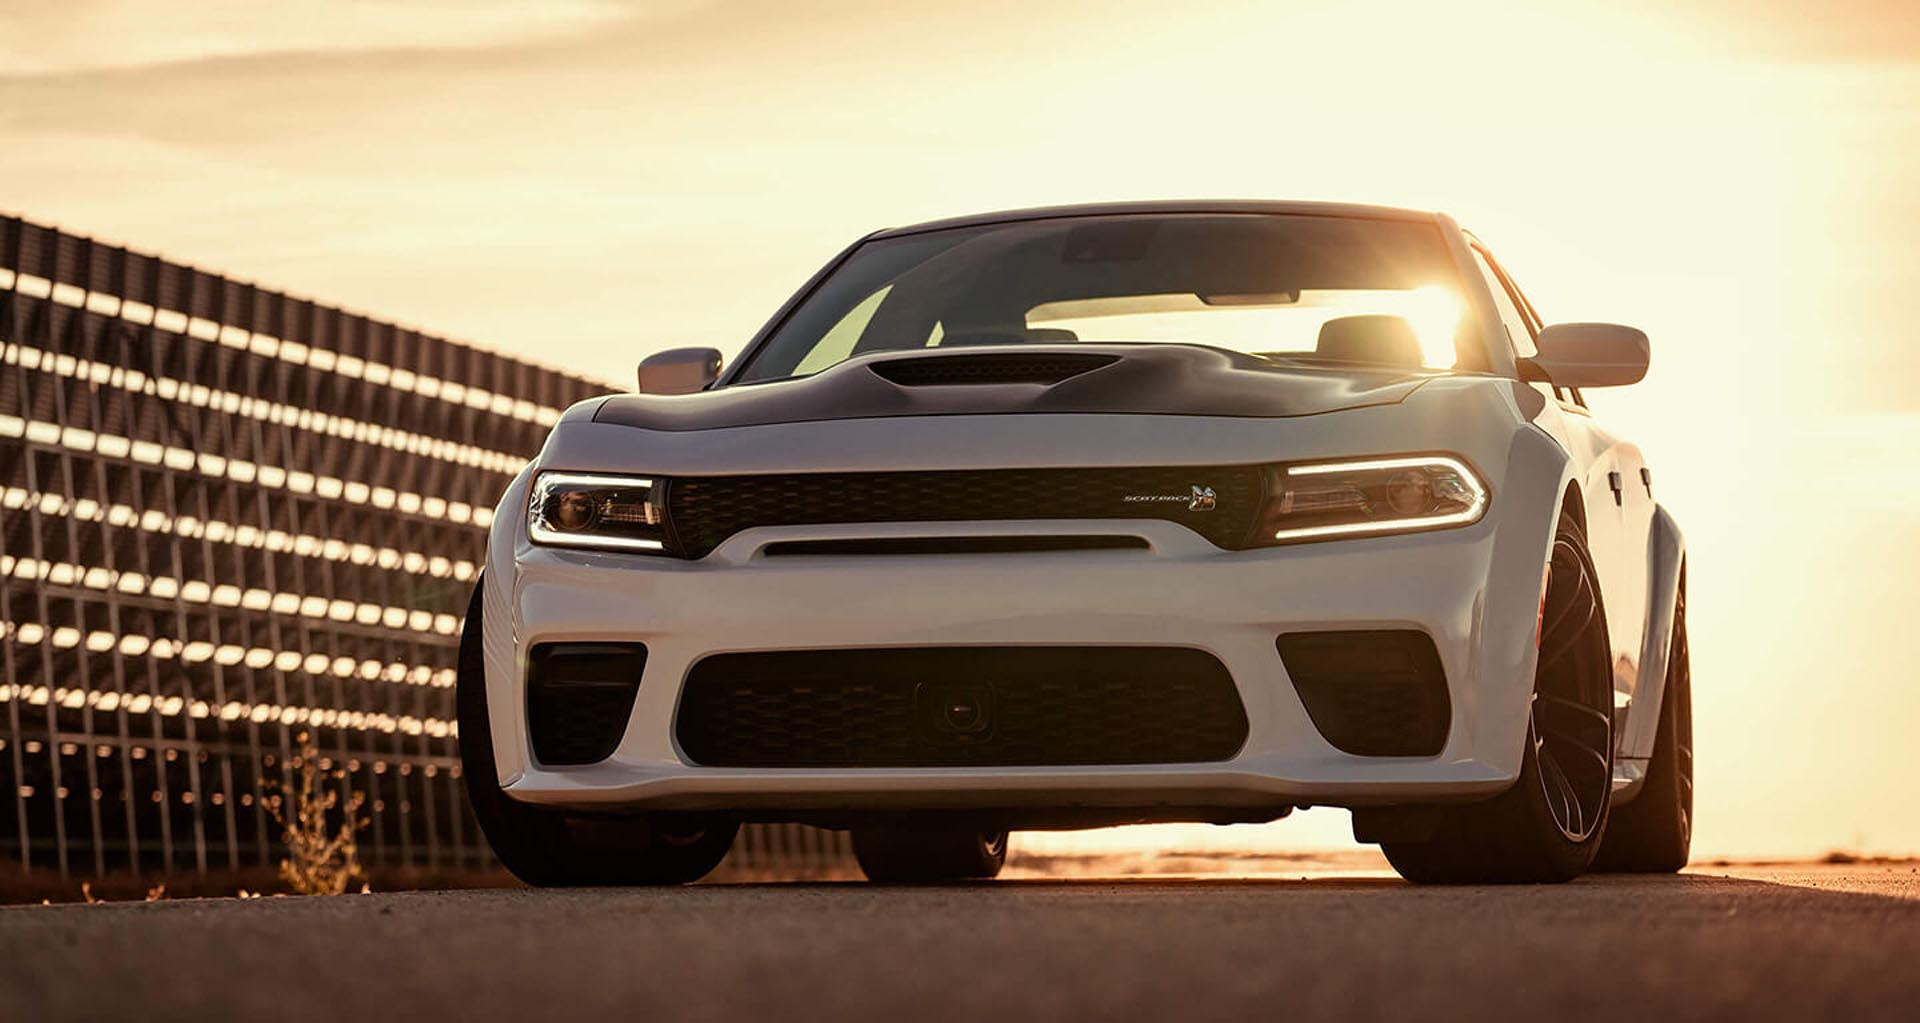 10_Dodge Charger SRT Hellcat Widebody front